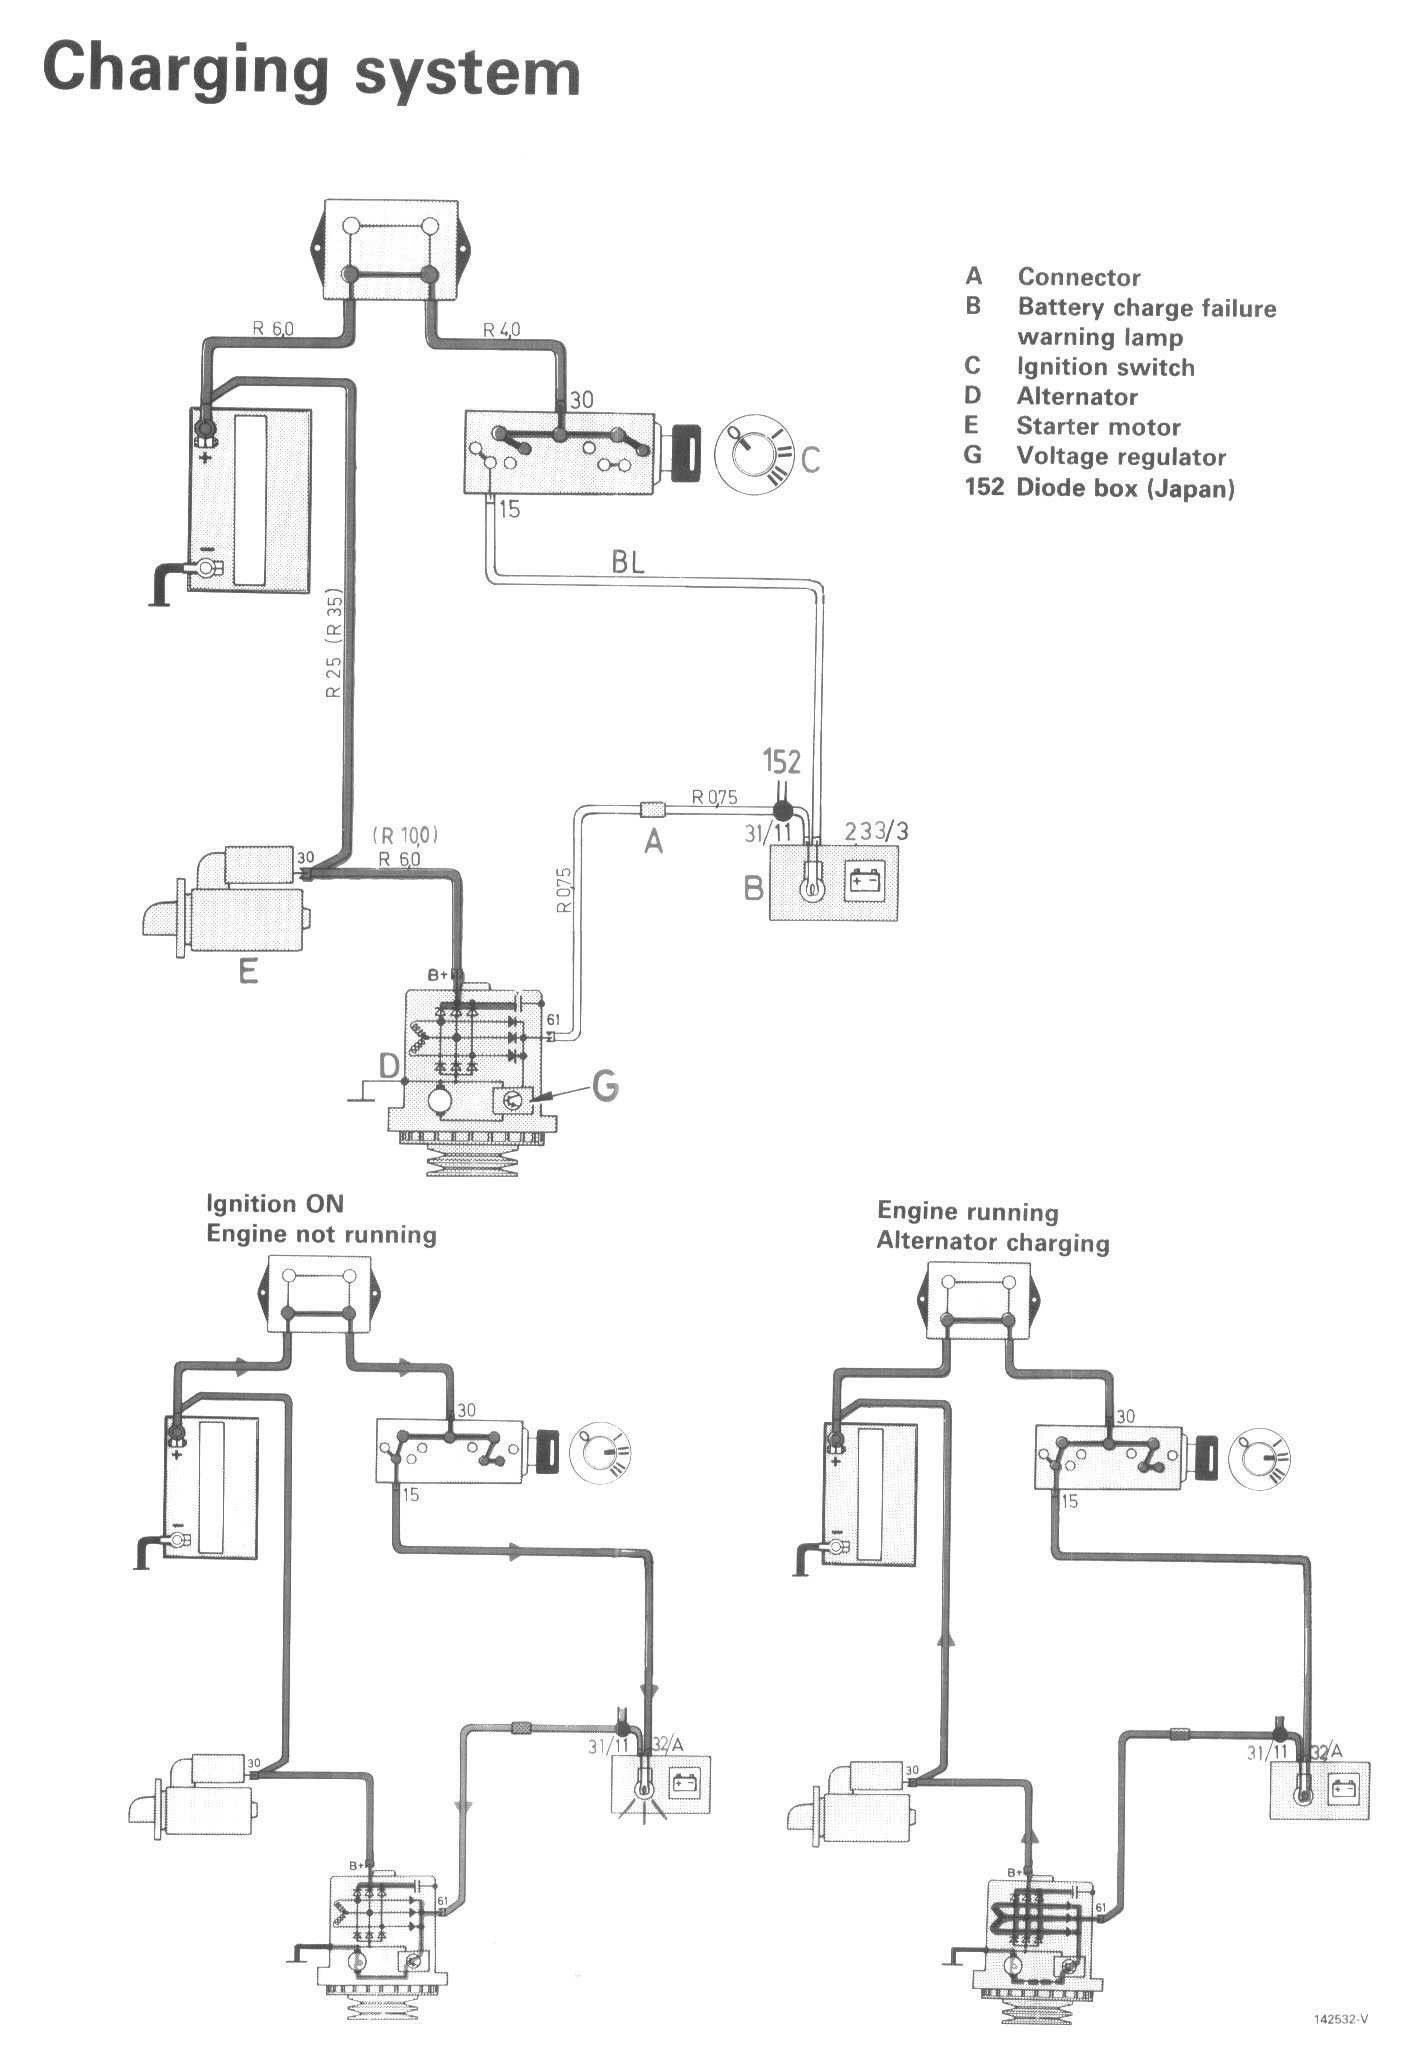 volvo penta outdrive wiring diagram 2 sx parts domainadvice org [ 1409 x 2057 Pixel ]